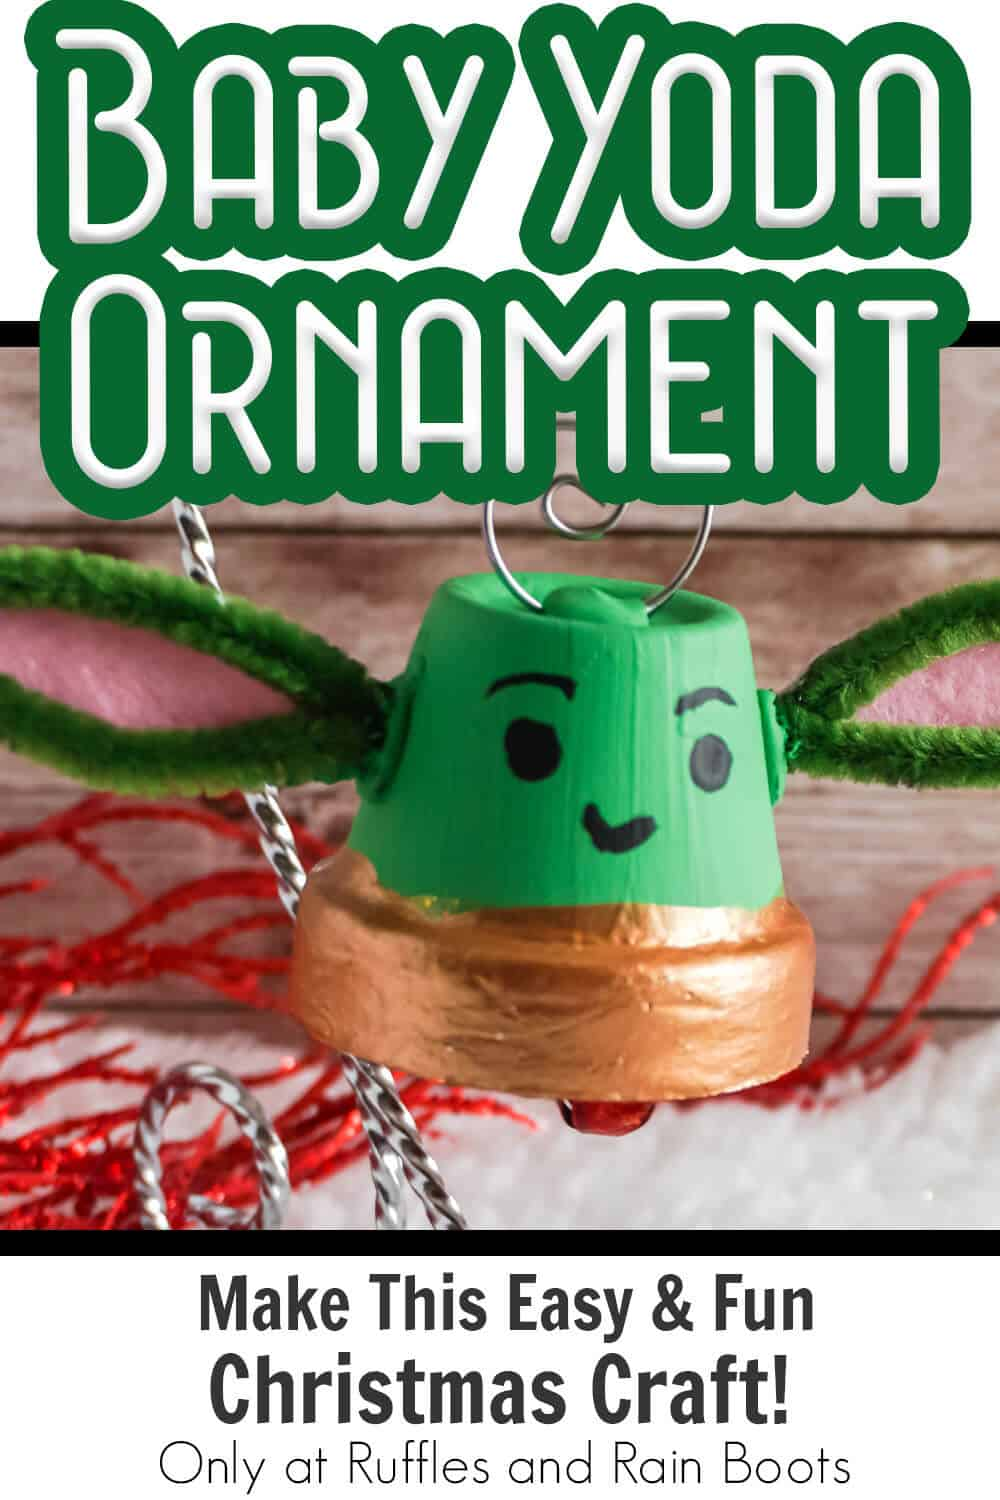 mandalorian inspired baby yoda ornament kids craft with text which reads baby yoda ornament make this easy & fun christmas craft!